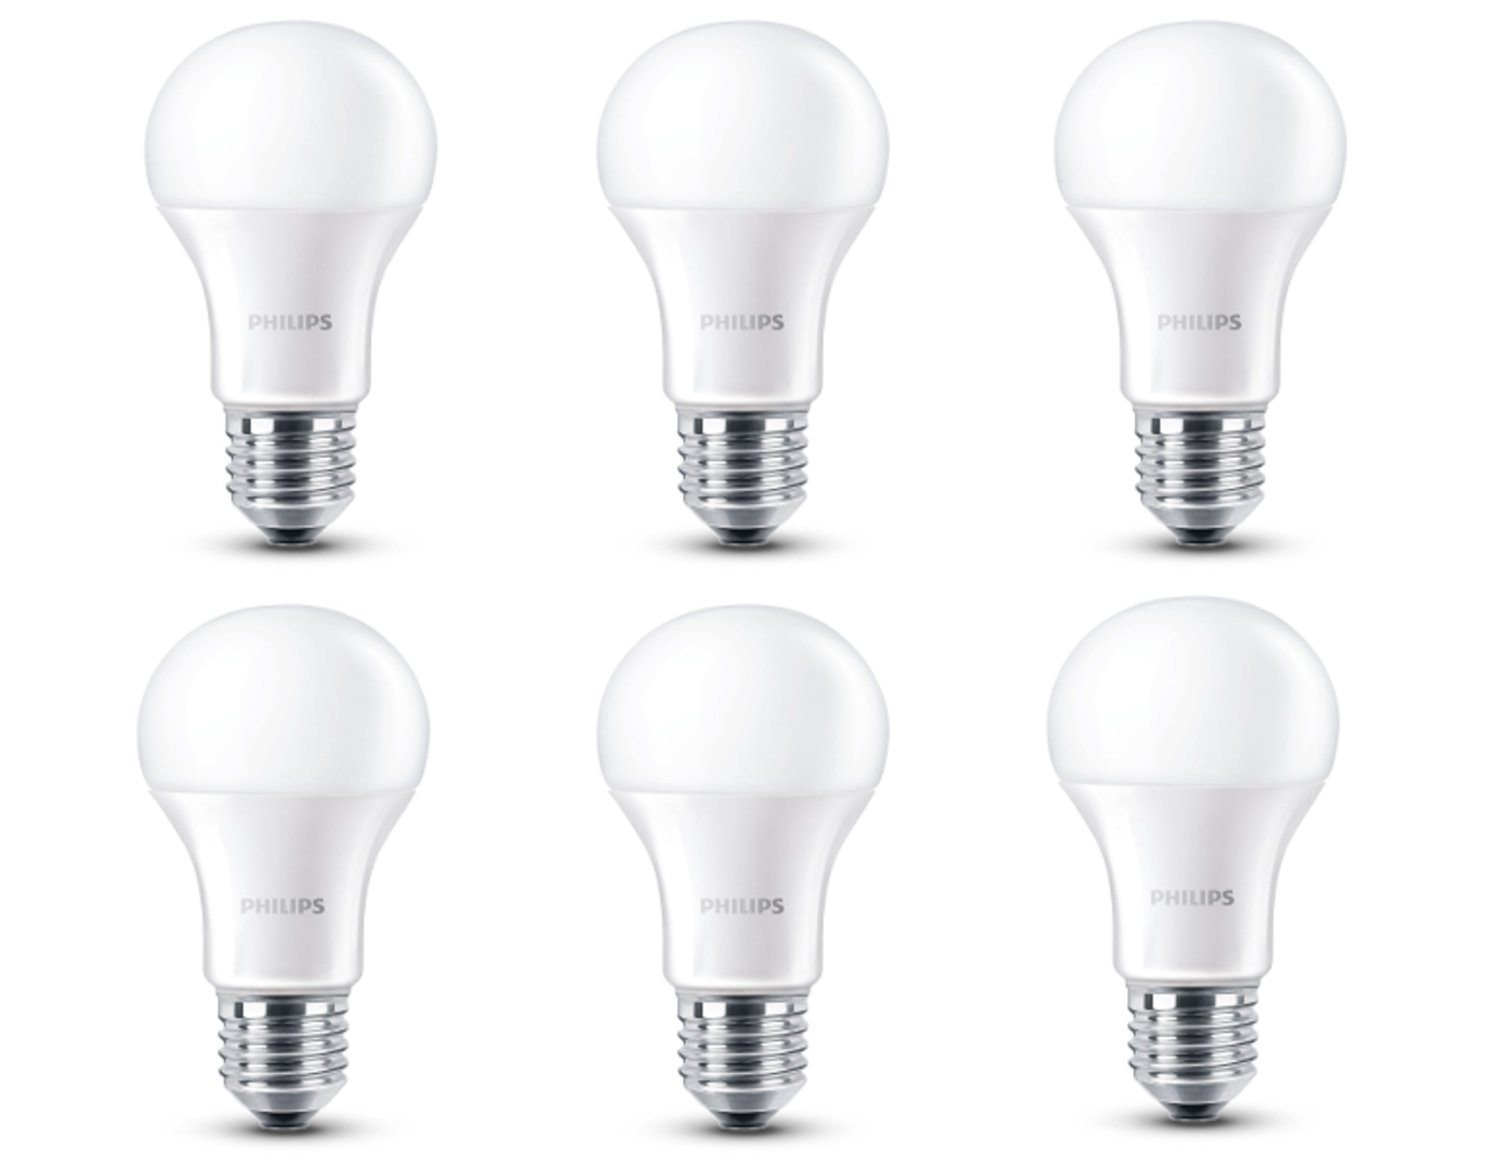 Philips 8718696510124 - Pack de 6 bombillas LED